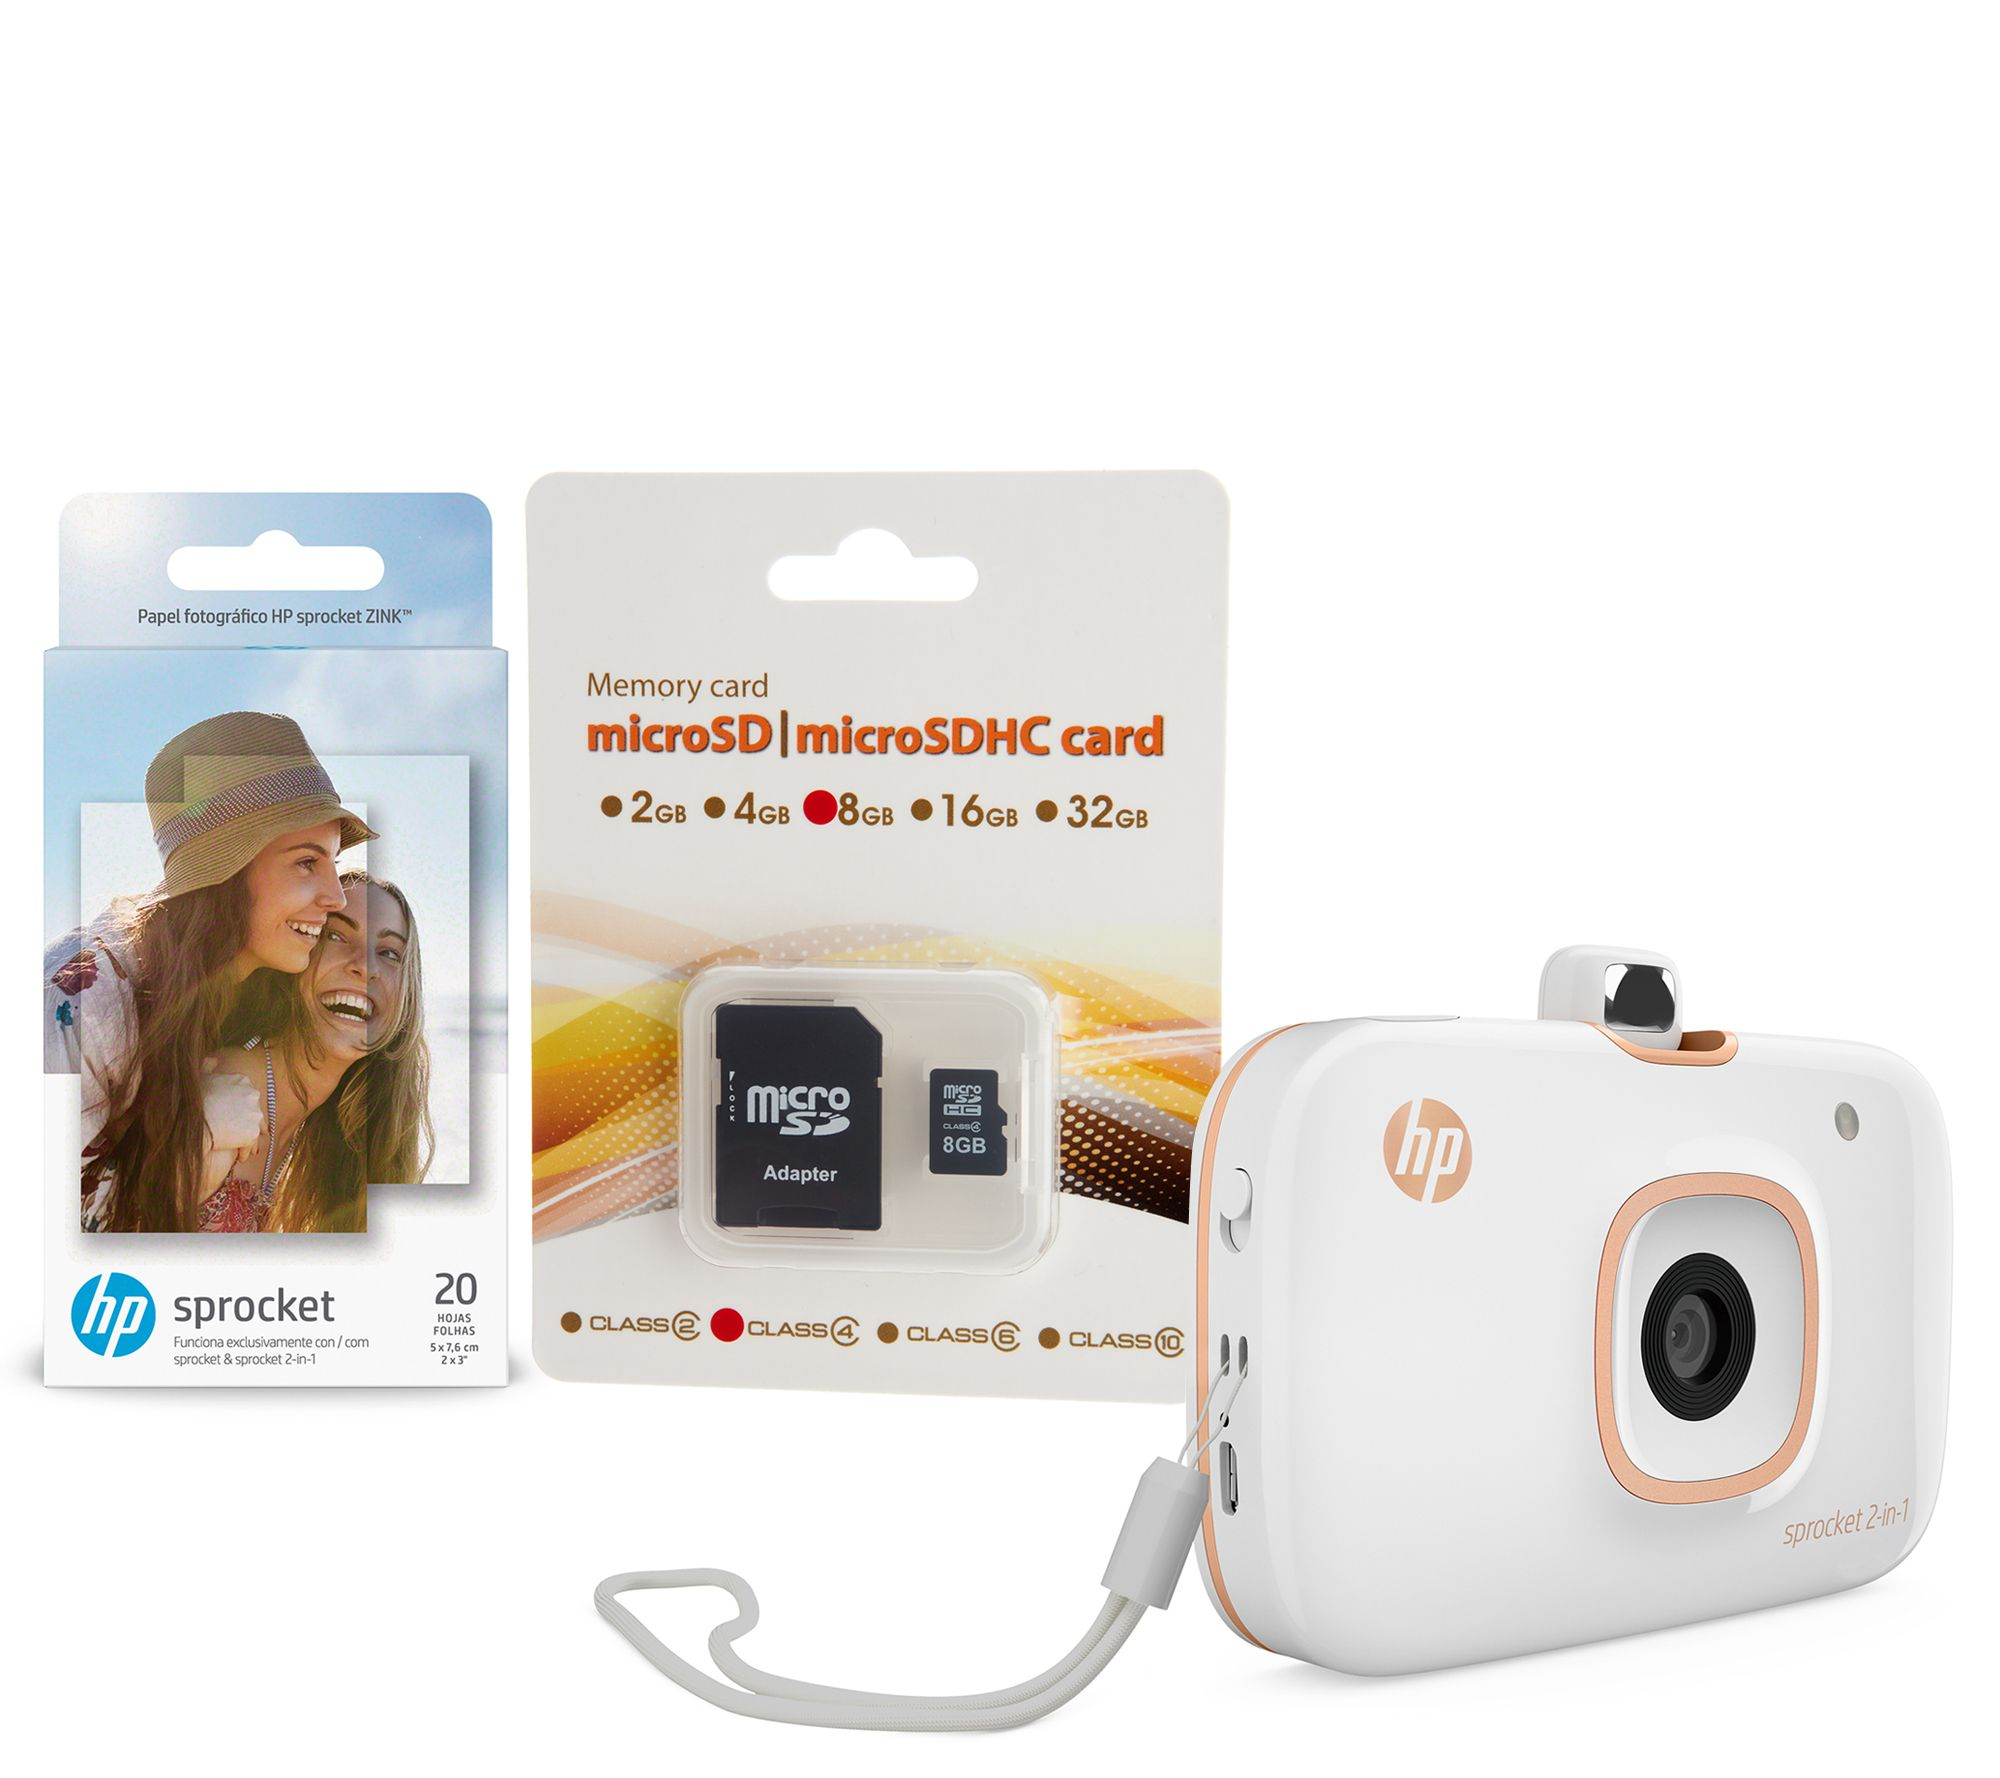 Hp Sprocket 2 In 1 Portable Photo Printer Camera W 8gb Sd Card